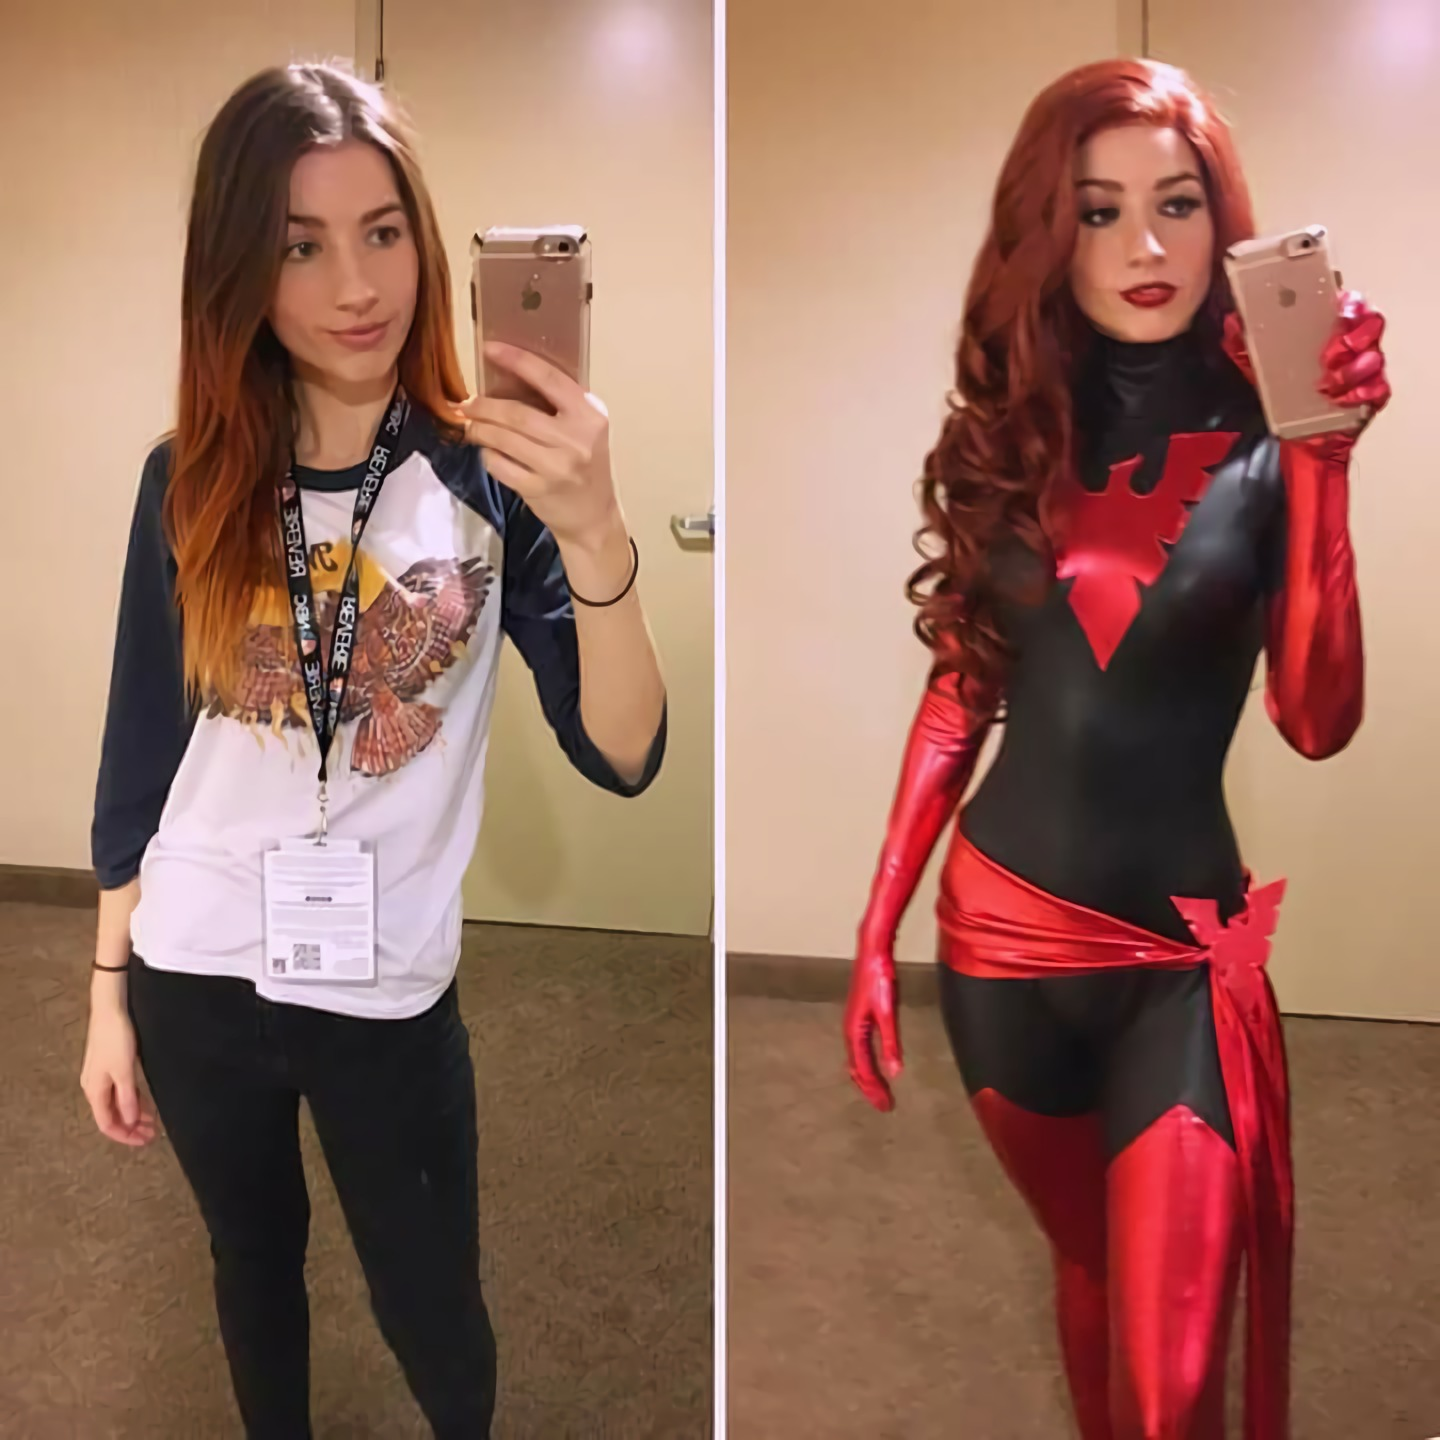 The Amanda Lynne cosplay collection